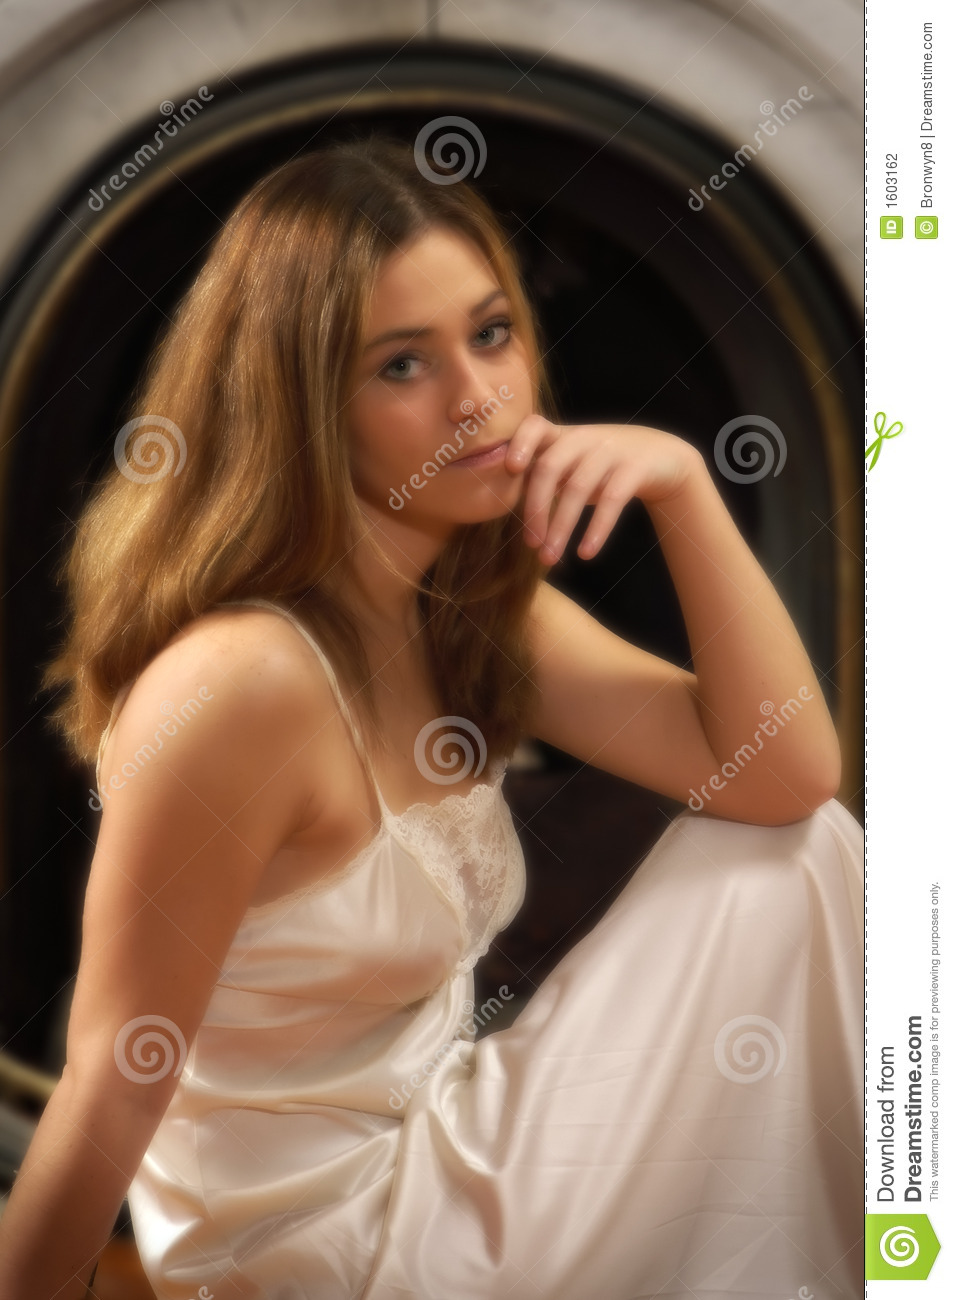 ... , wearing a... Nightgown Clipart